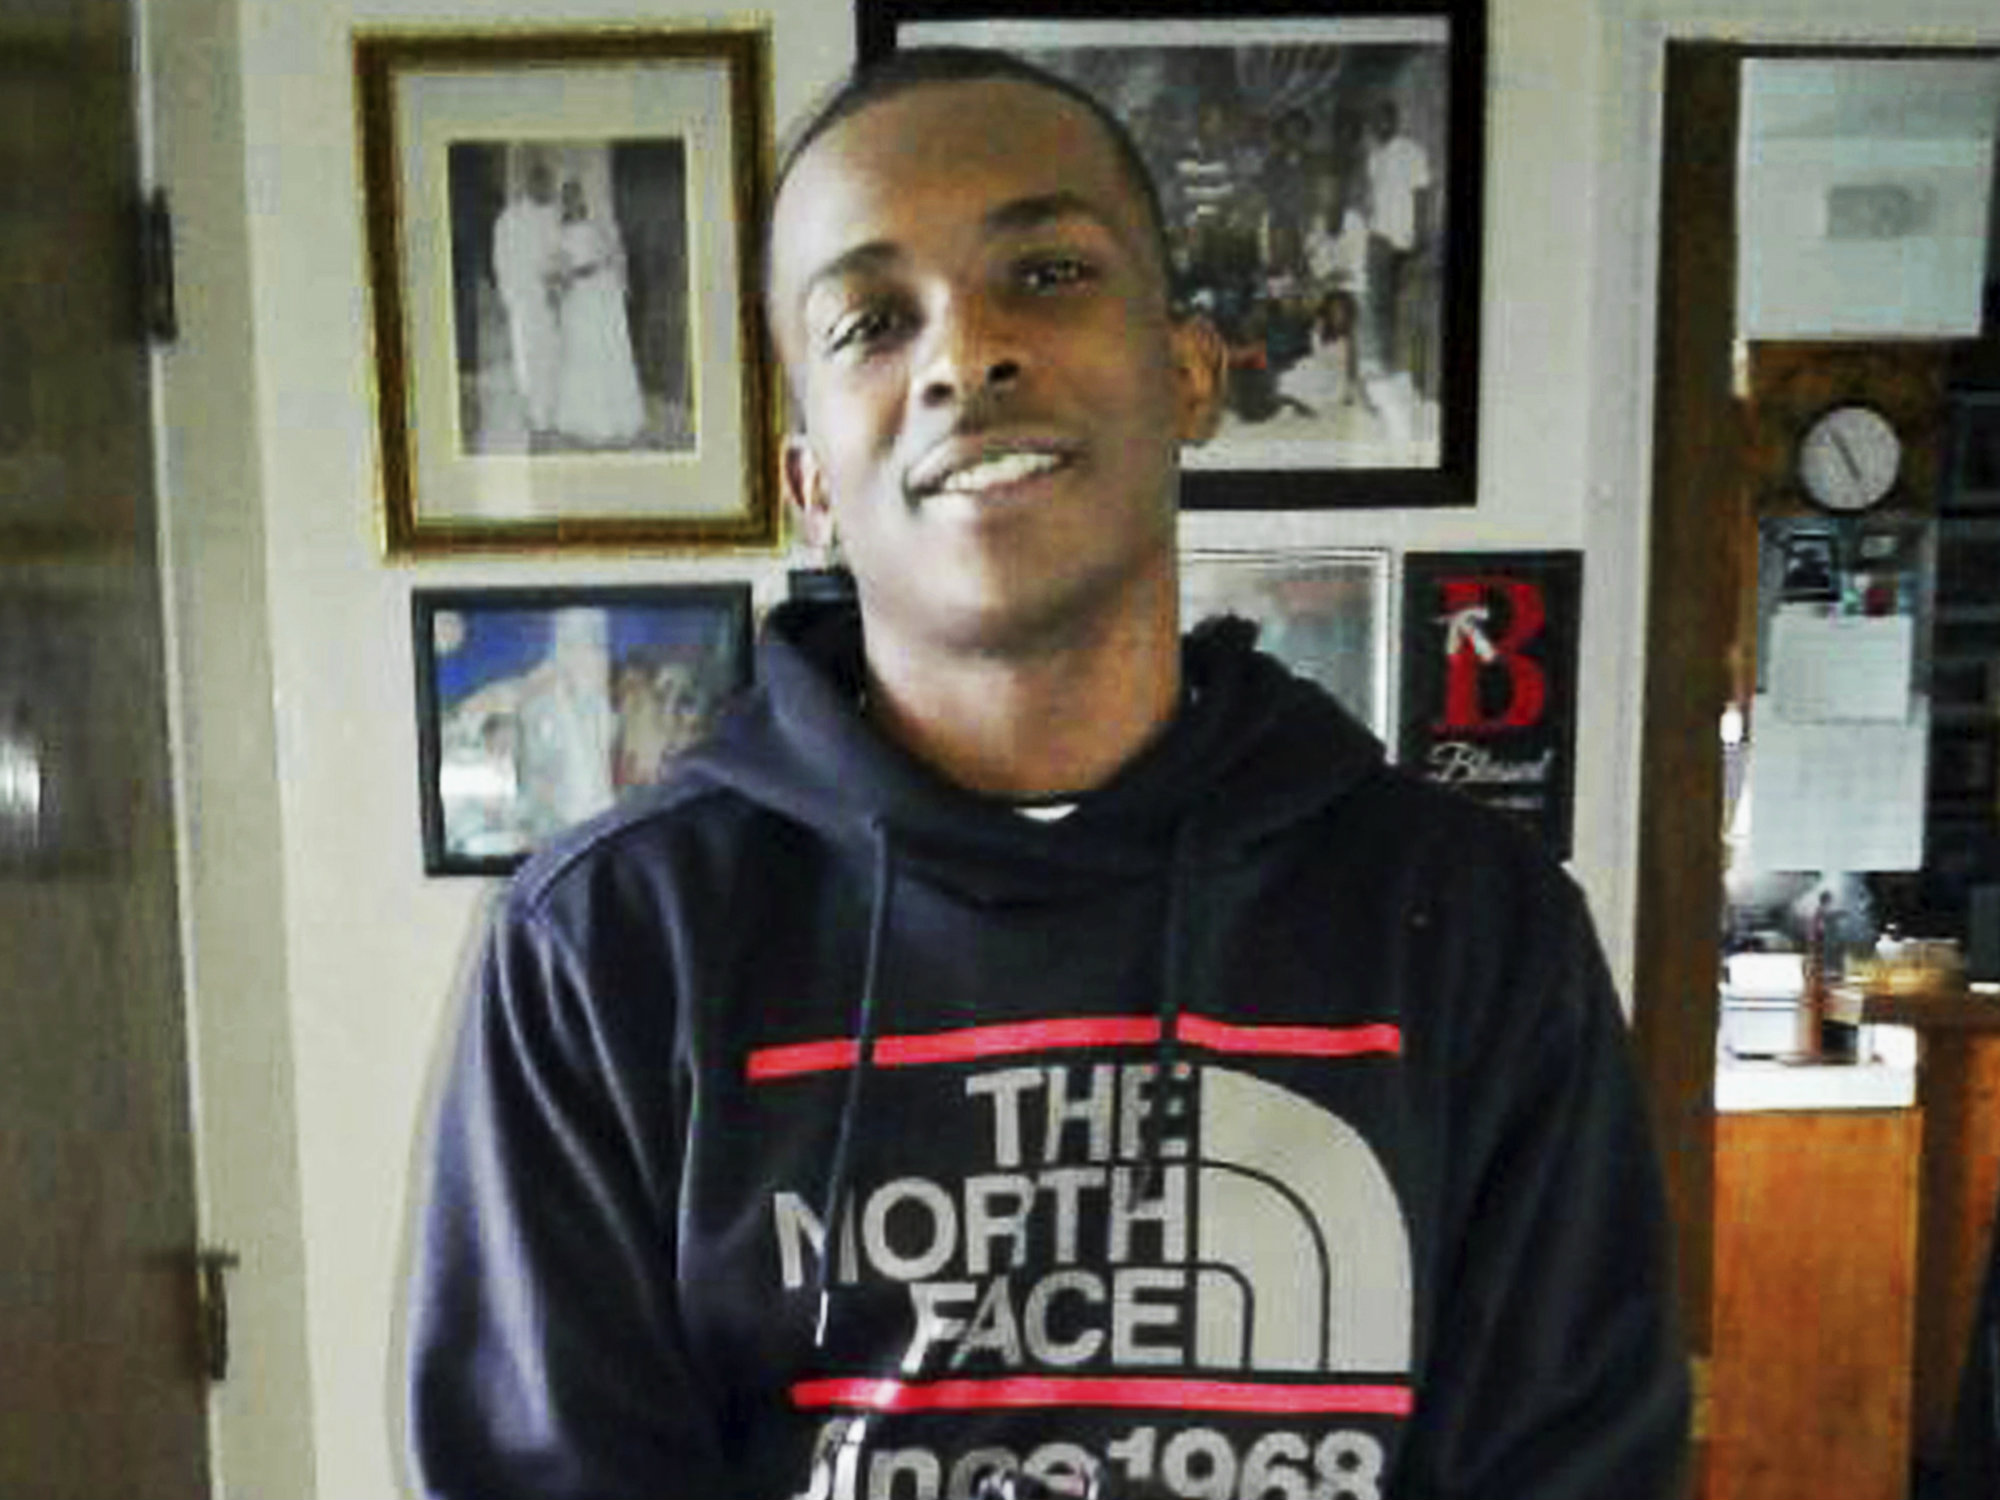 Stephon Clark, 22, was shot and killed by Sacramento police on March 18, 2018. Courtesy photo